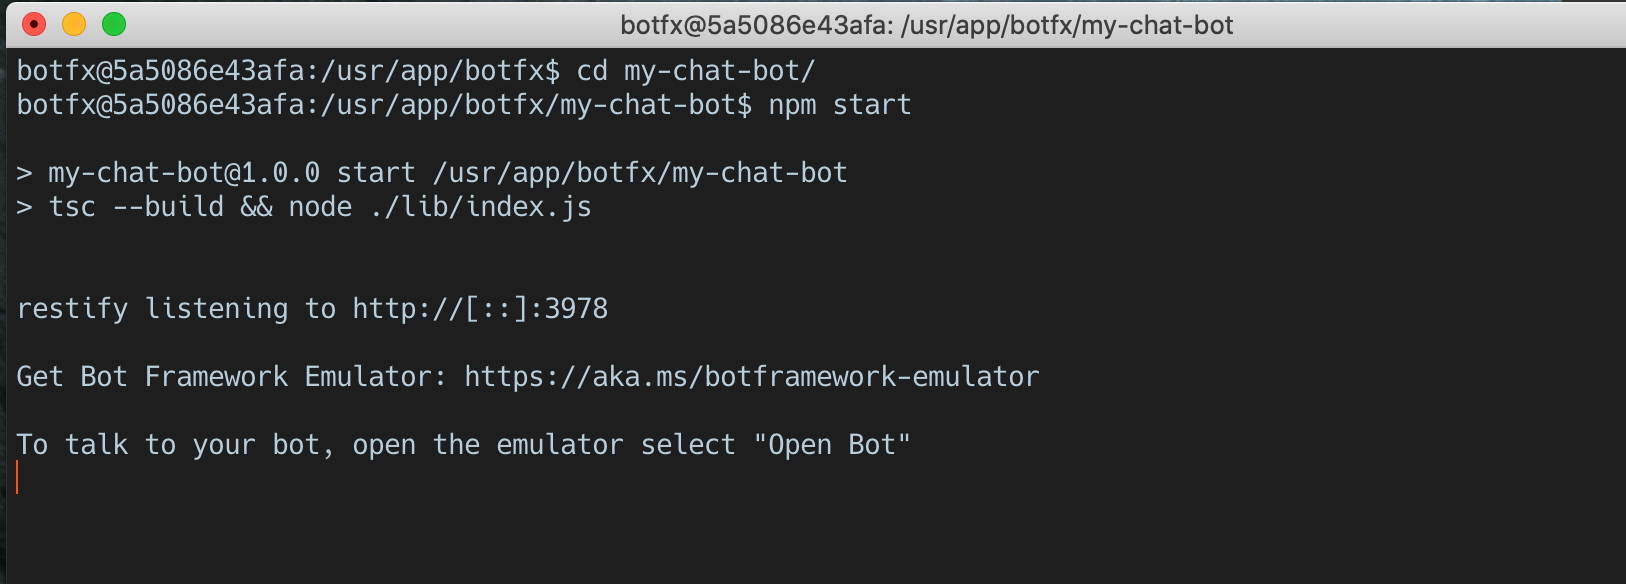 Chat running in Docker container